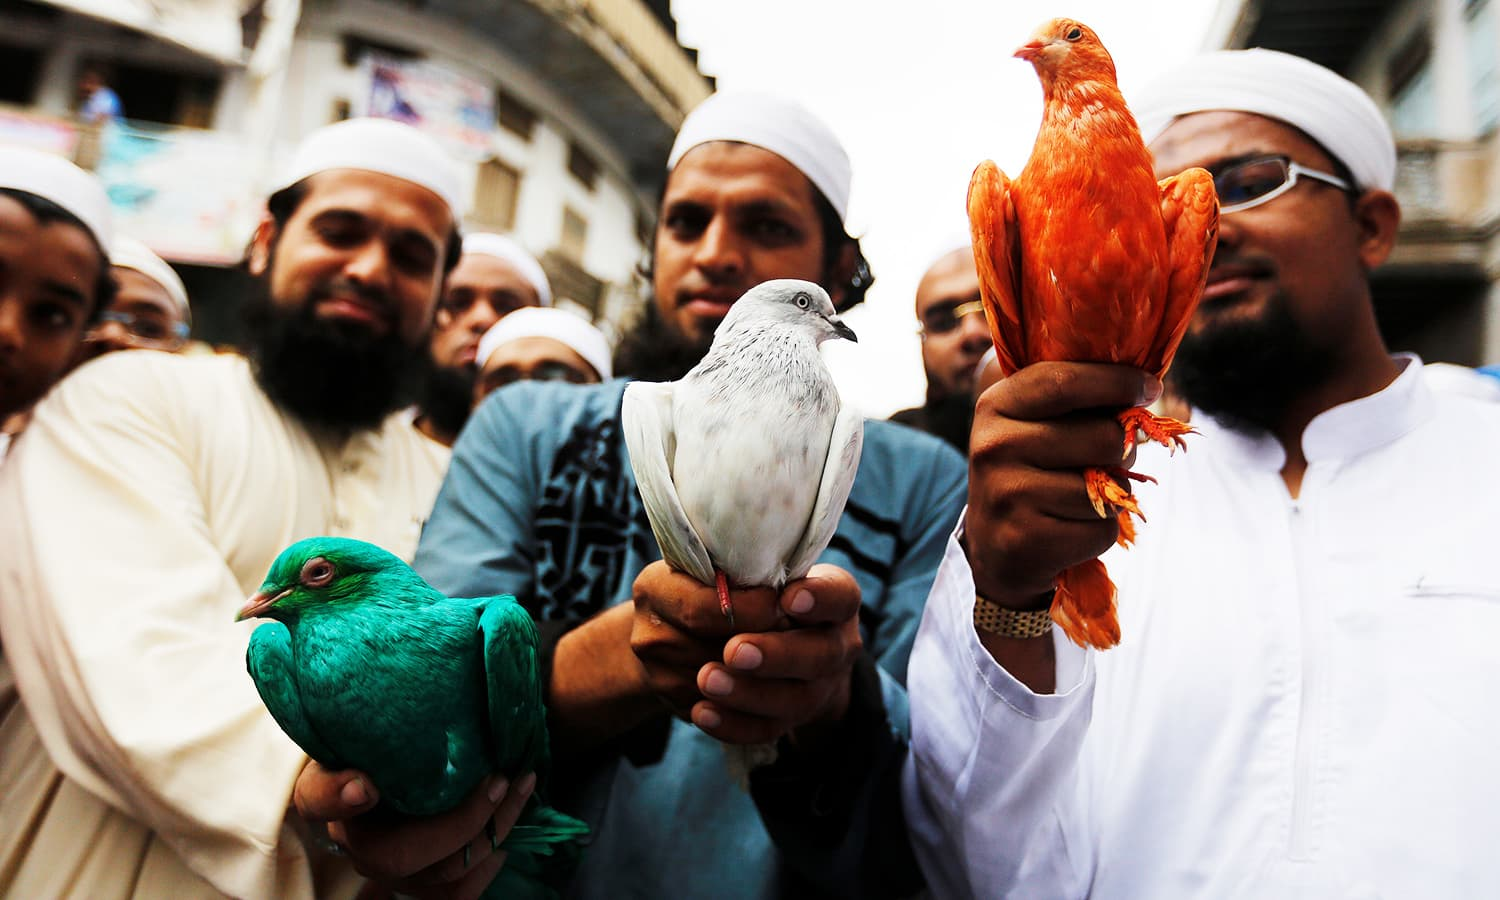 Muslims hold pigeons during a march to celebrate India's Independence Day in Ahmedabad, India, 2016. ─ Reuters